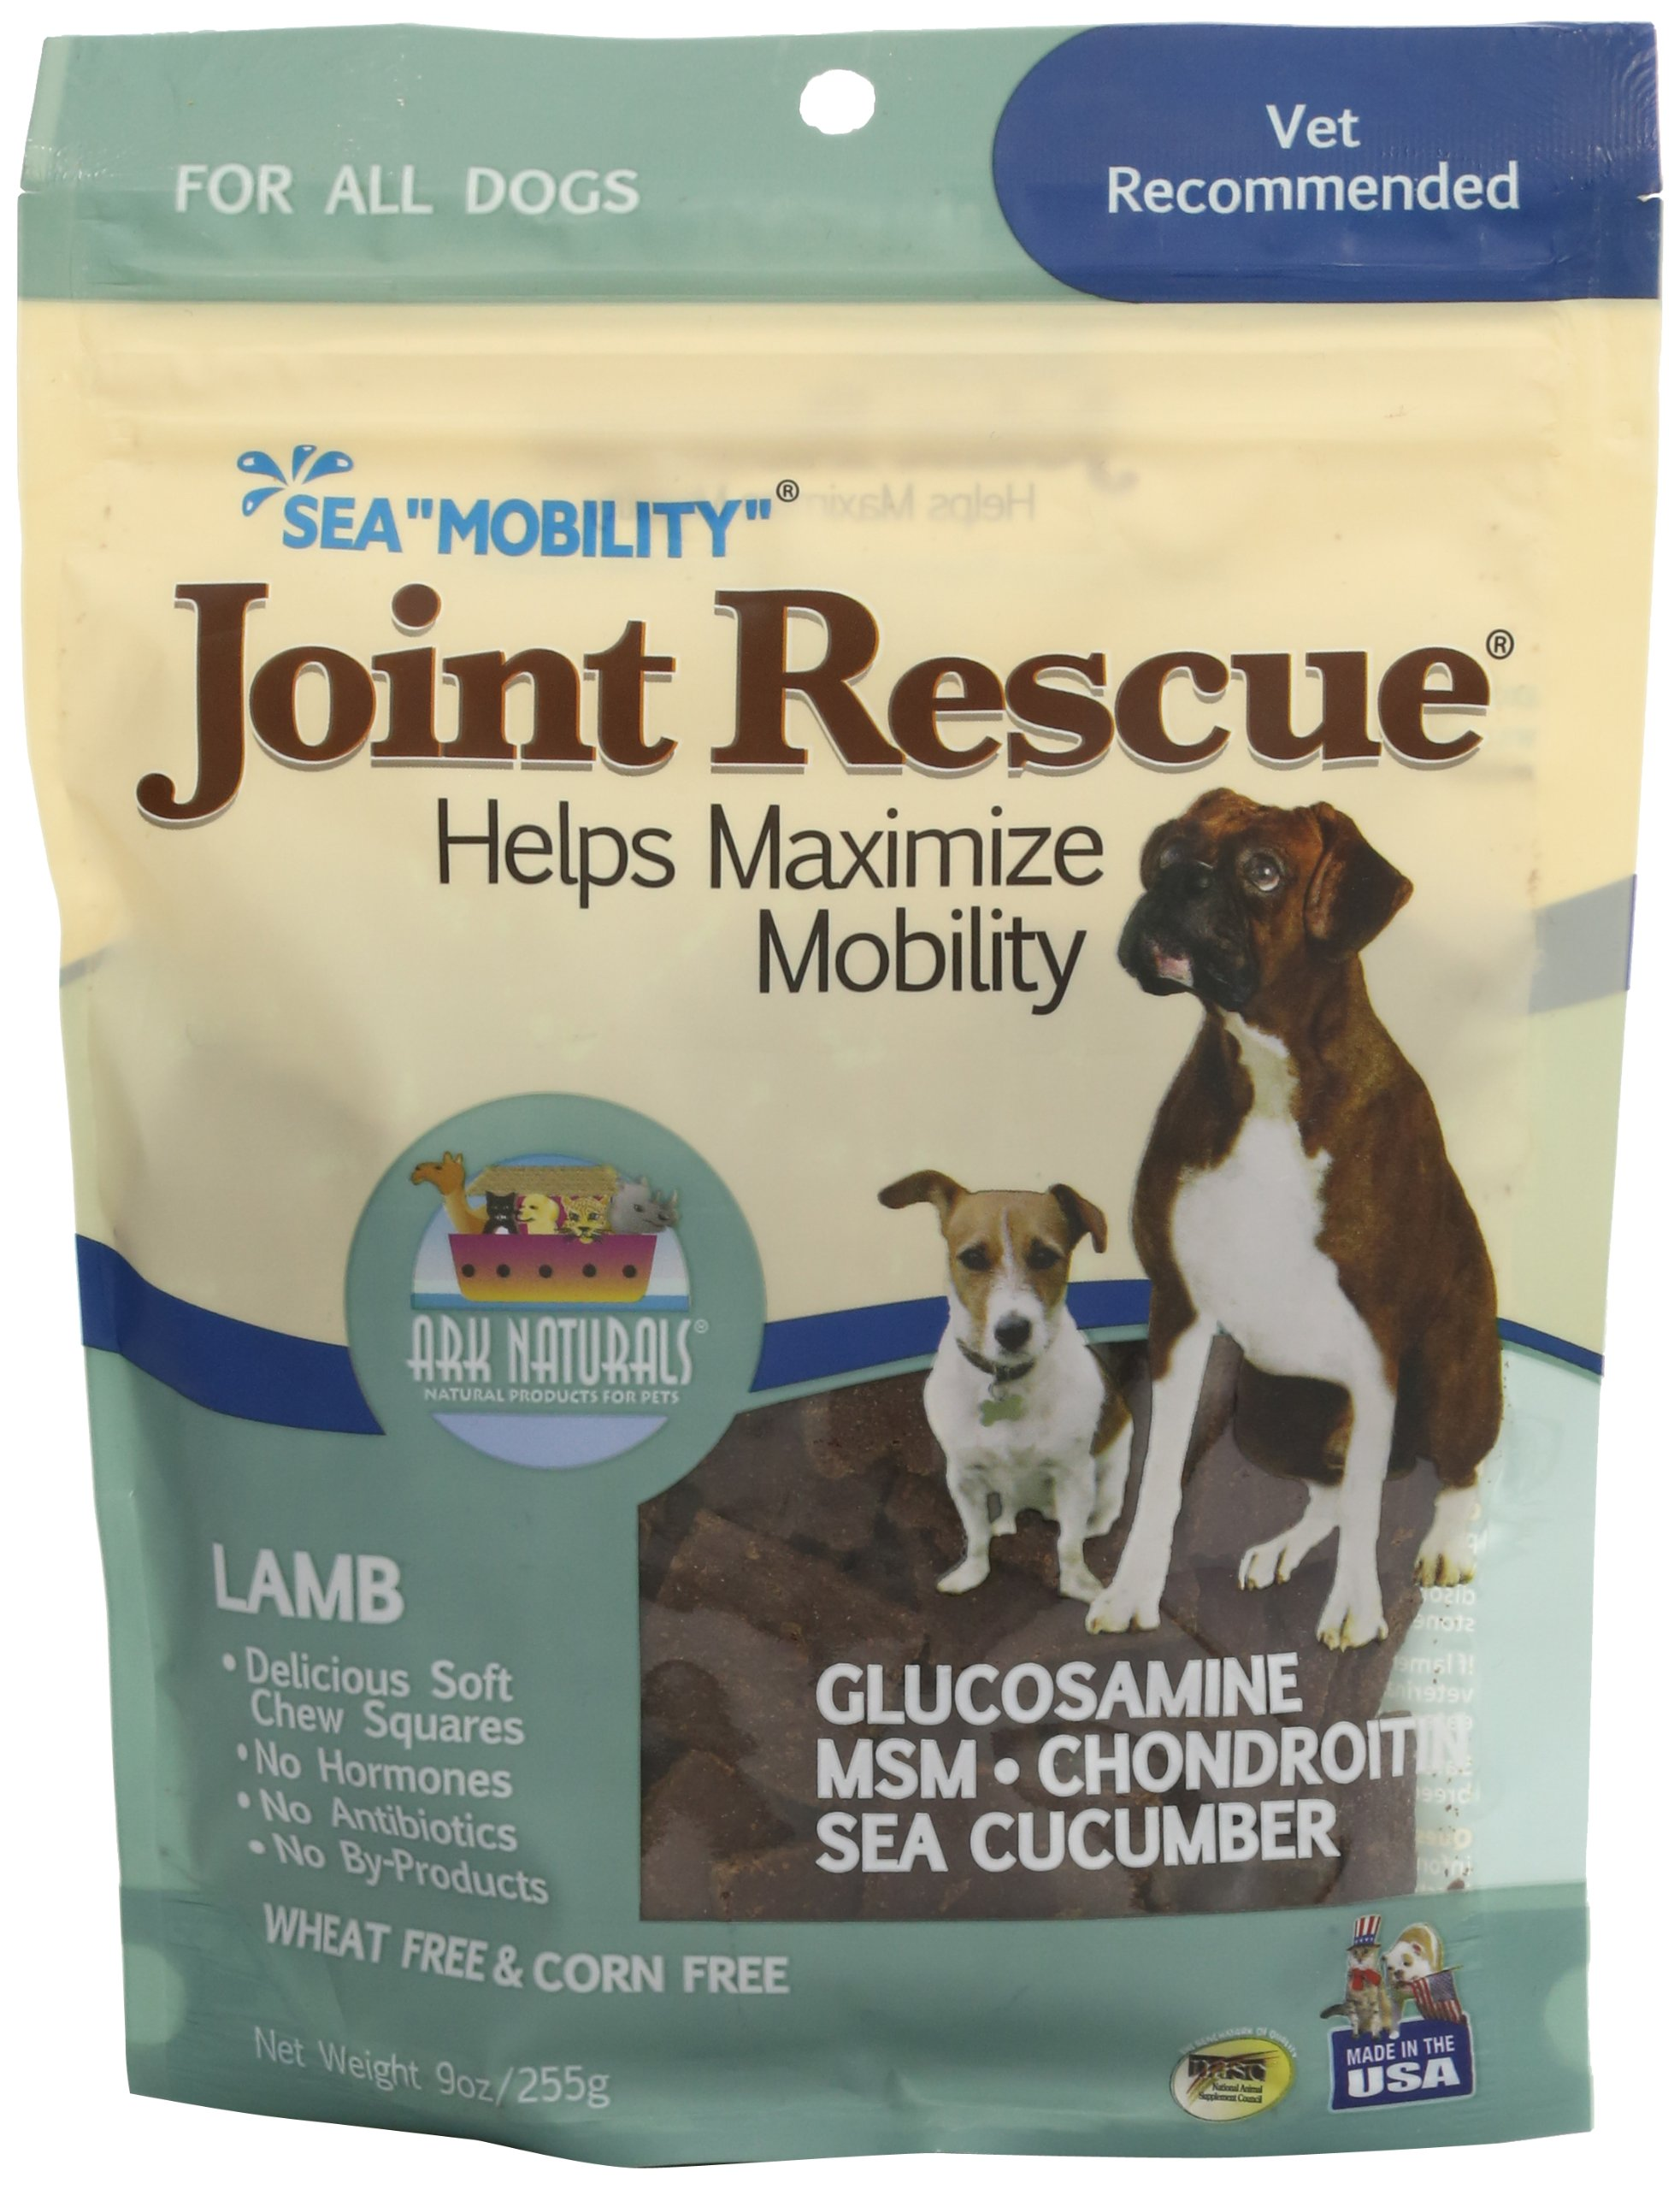 Ark Naturals Sea Mobility Lamb Jerky For Dogs, 9-Ounce Pouches (Pack Of 2) by ARK NATURALS